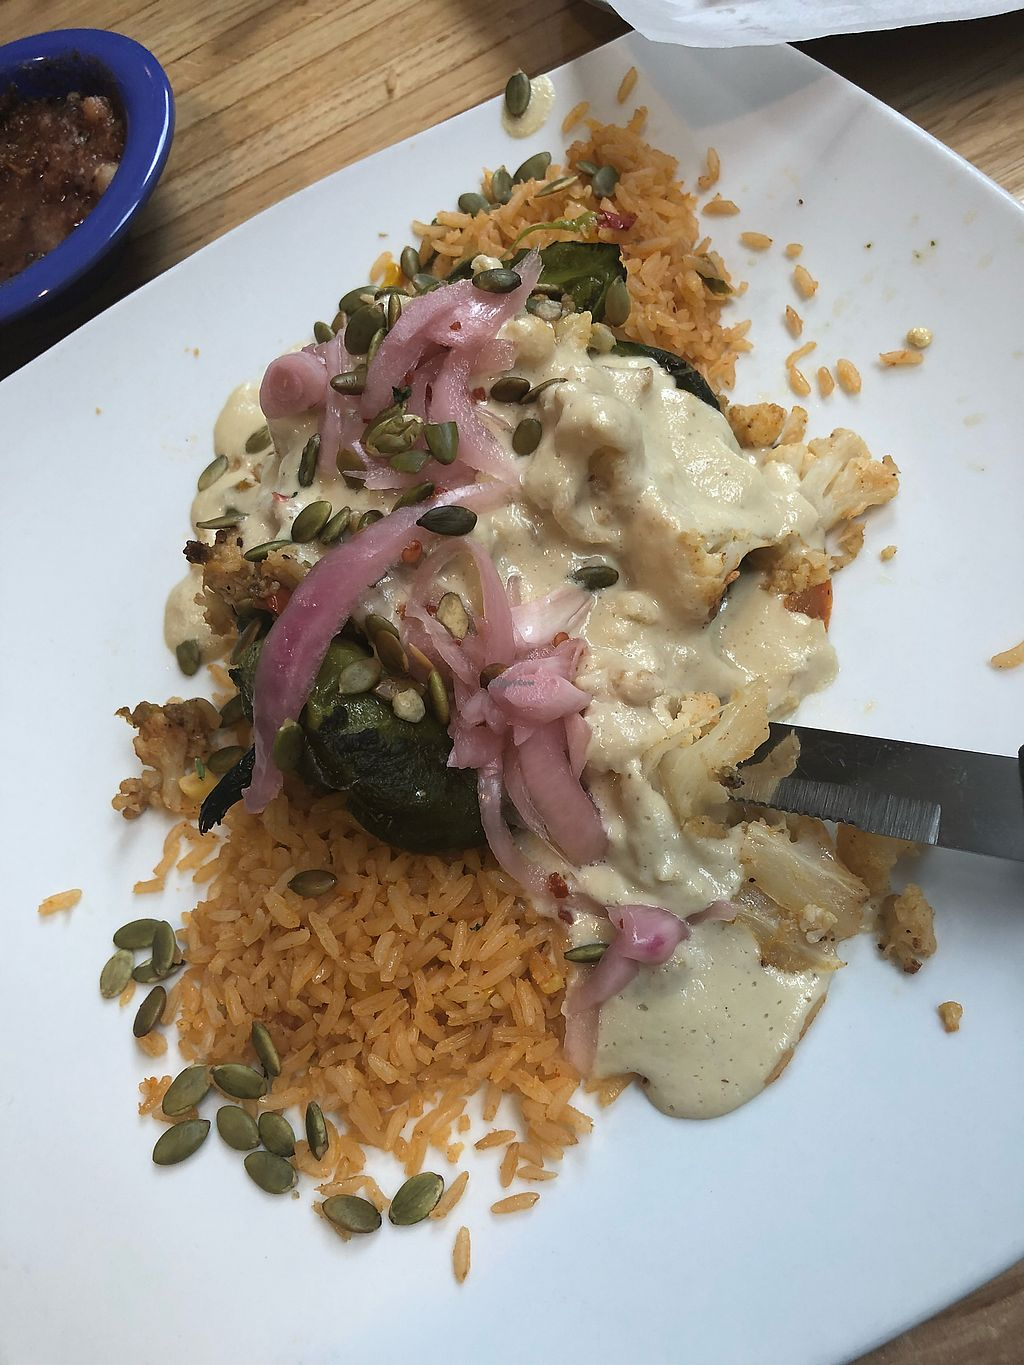 """Photo of Ed's Cantina & Grill  by <a href=""""/members/profile/boulder2beirut"""">boulder2beirut</a> <br/>Definitely get the vegan cauliflower stuffed poblano with mole blanco!! Unbelievably tasty. On the vegan menu.  <br/> January 4, 2018  - <a href='/contact/abuse/image/98433/342763'>Report</a>"""